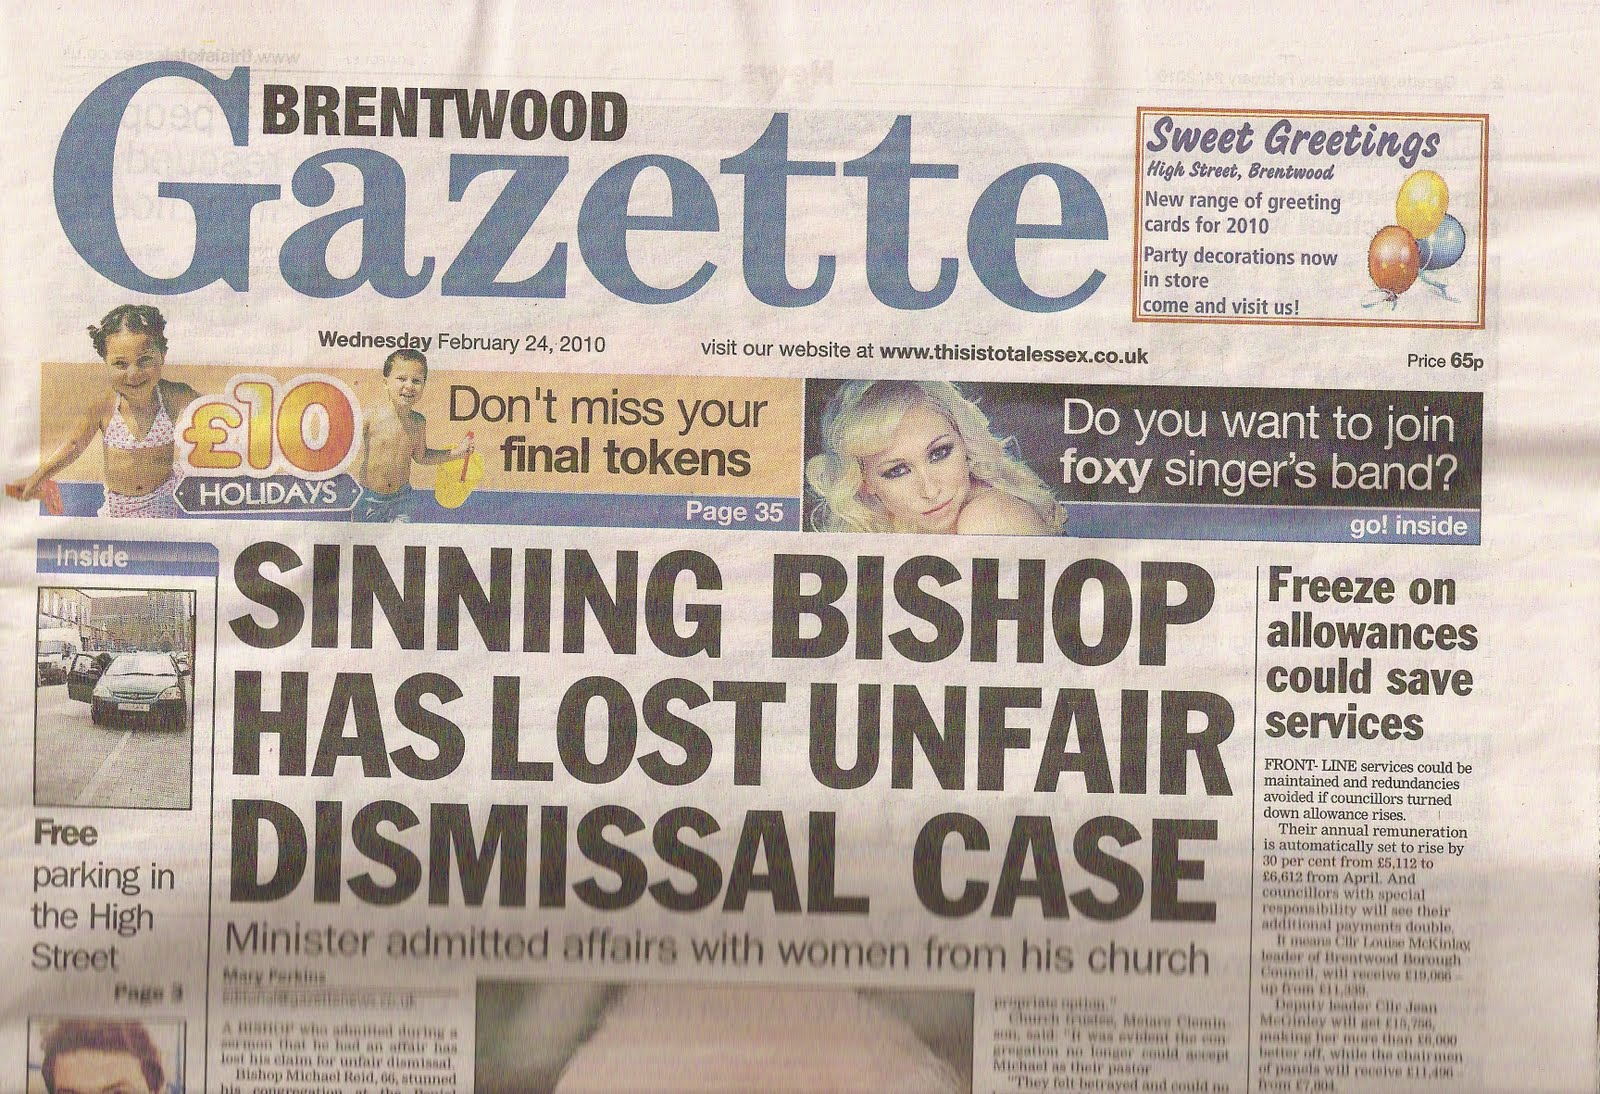 brentwood gazette dating News, sport and local info in the chelmsford and essex area from chelmsford weekly news search for local events, cinemas, homes, cars, and jobs.